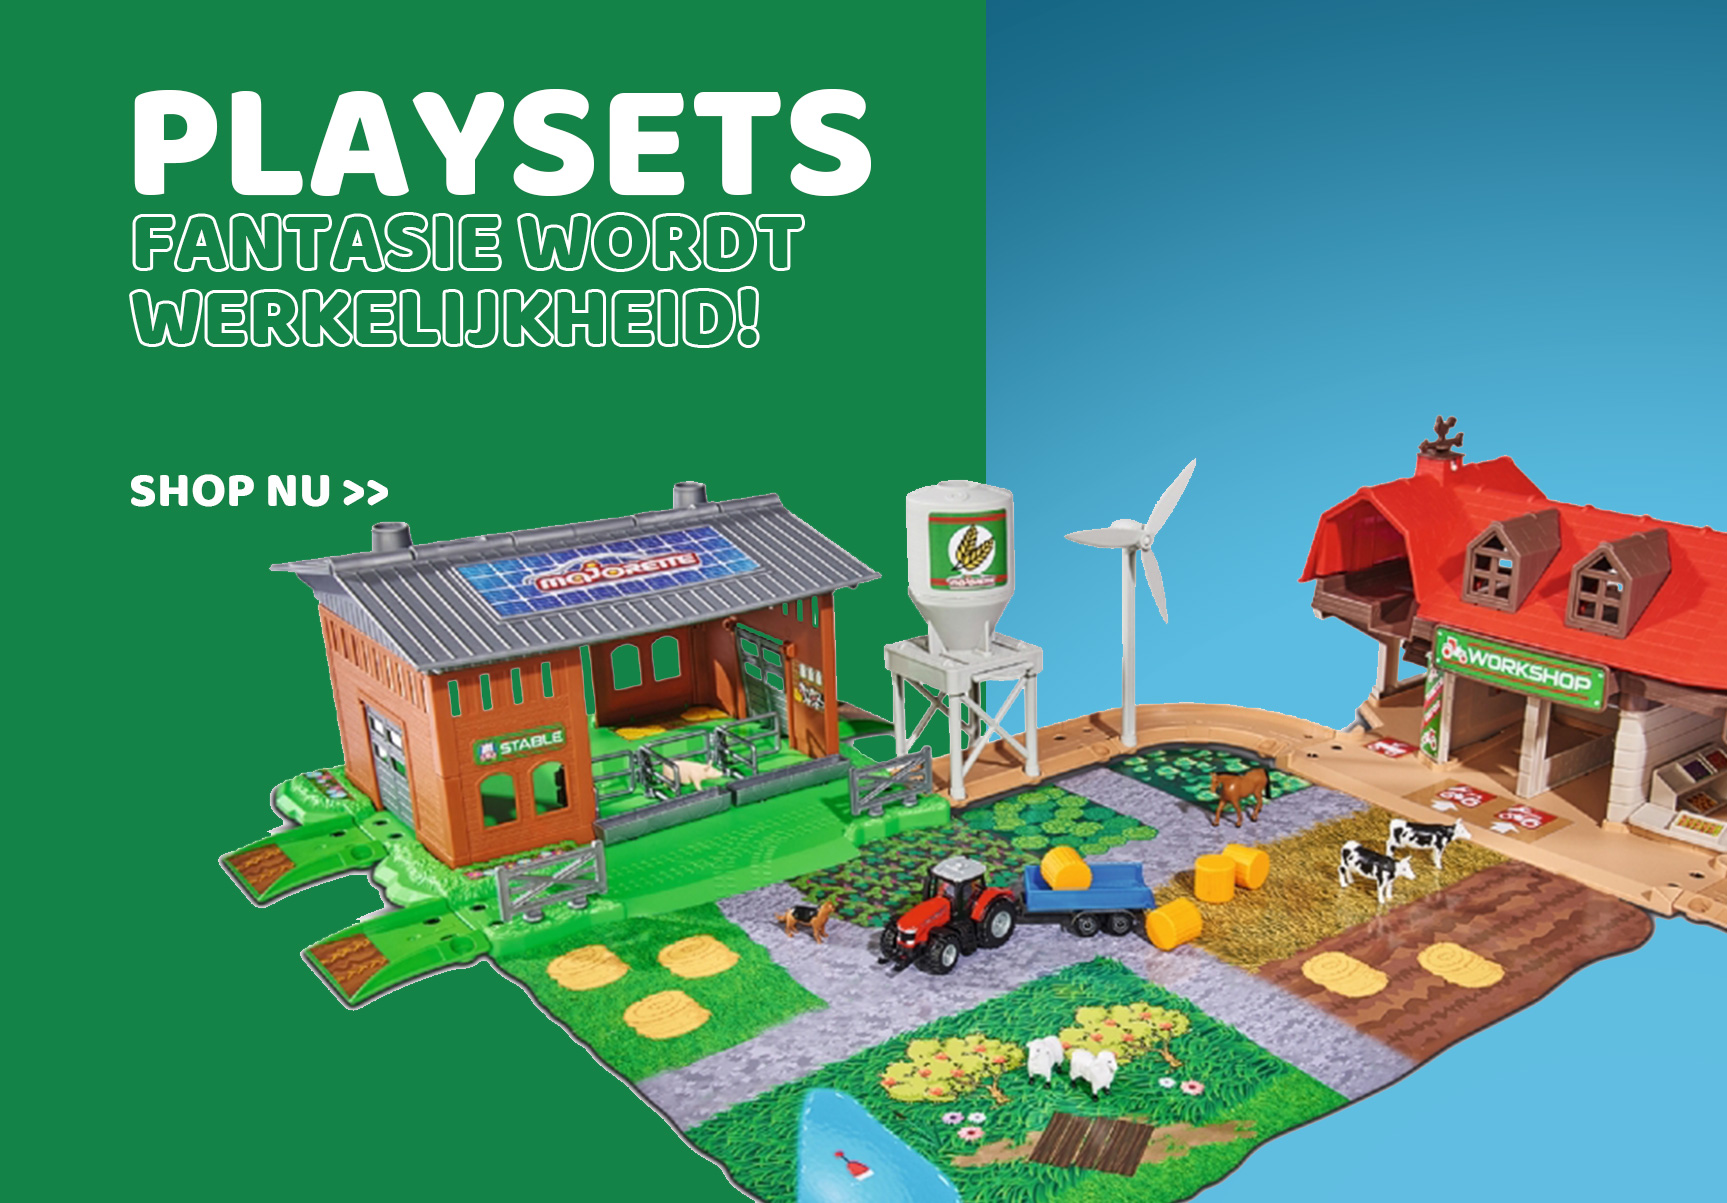 PLAYSETS-home-banner-50